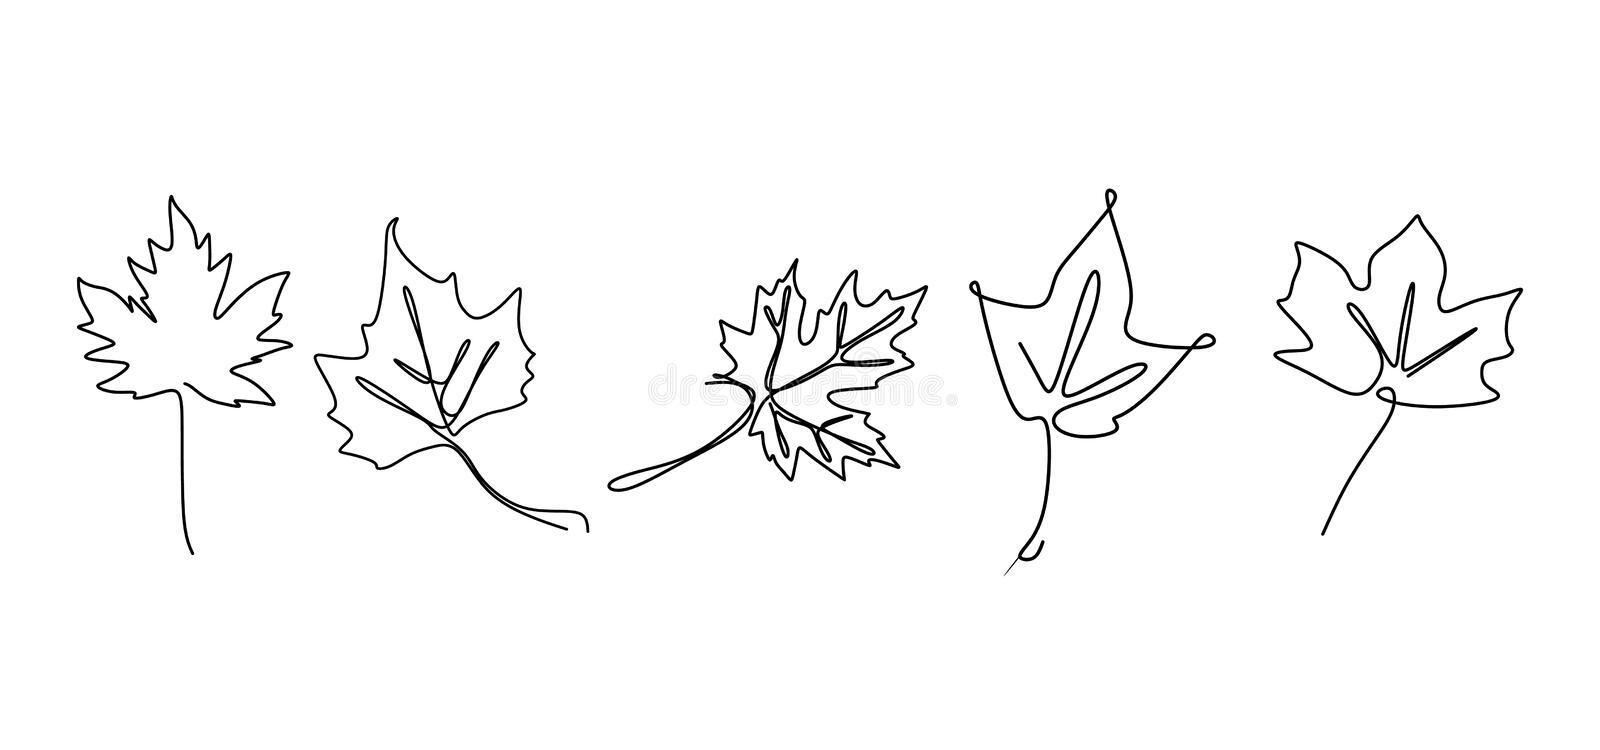 Continuous line drawing of maple leaves hand drawn set collections. Minimal design simplicity autumn theme stock illustration